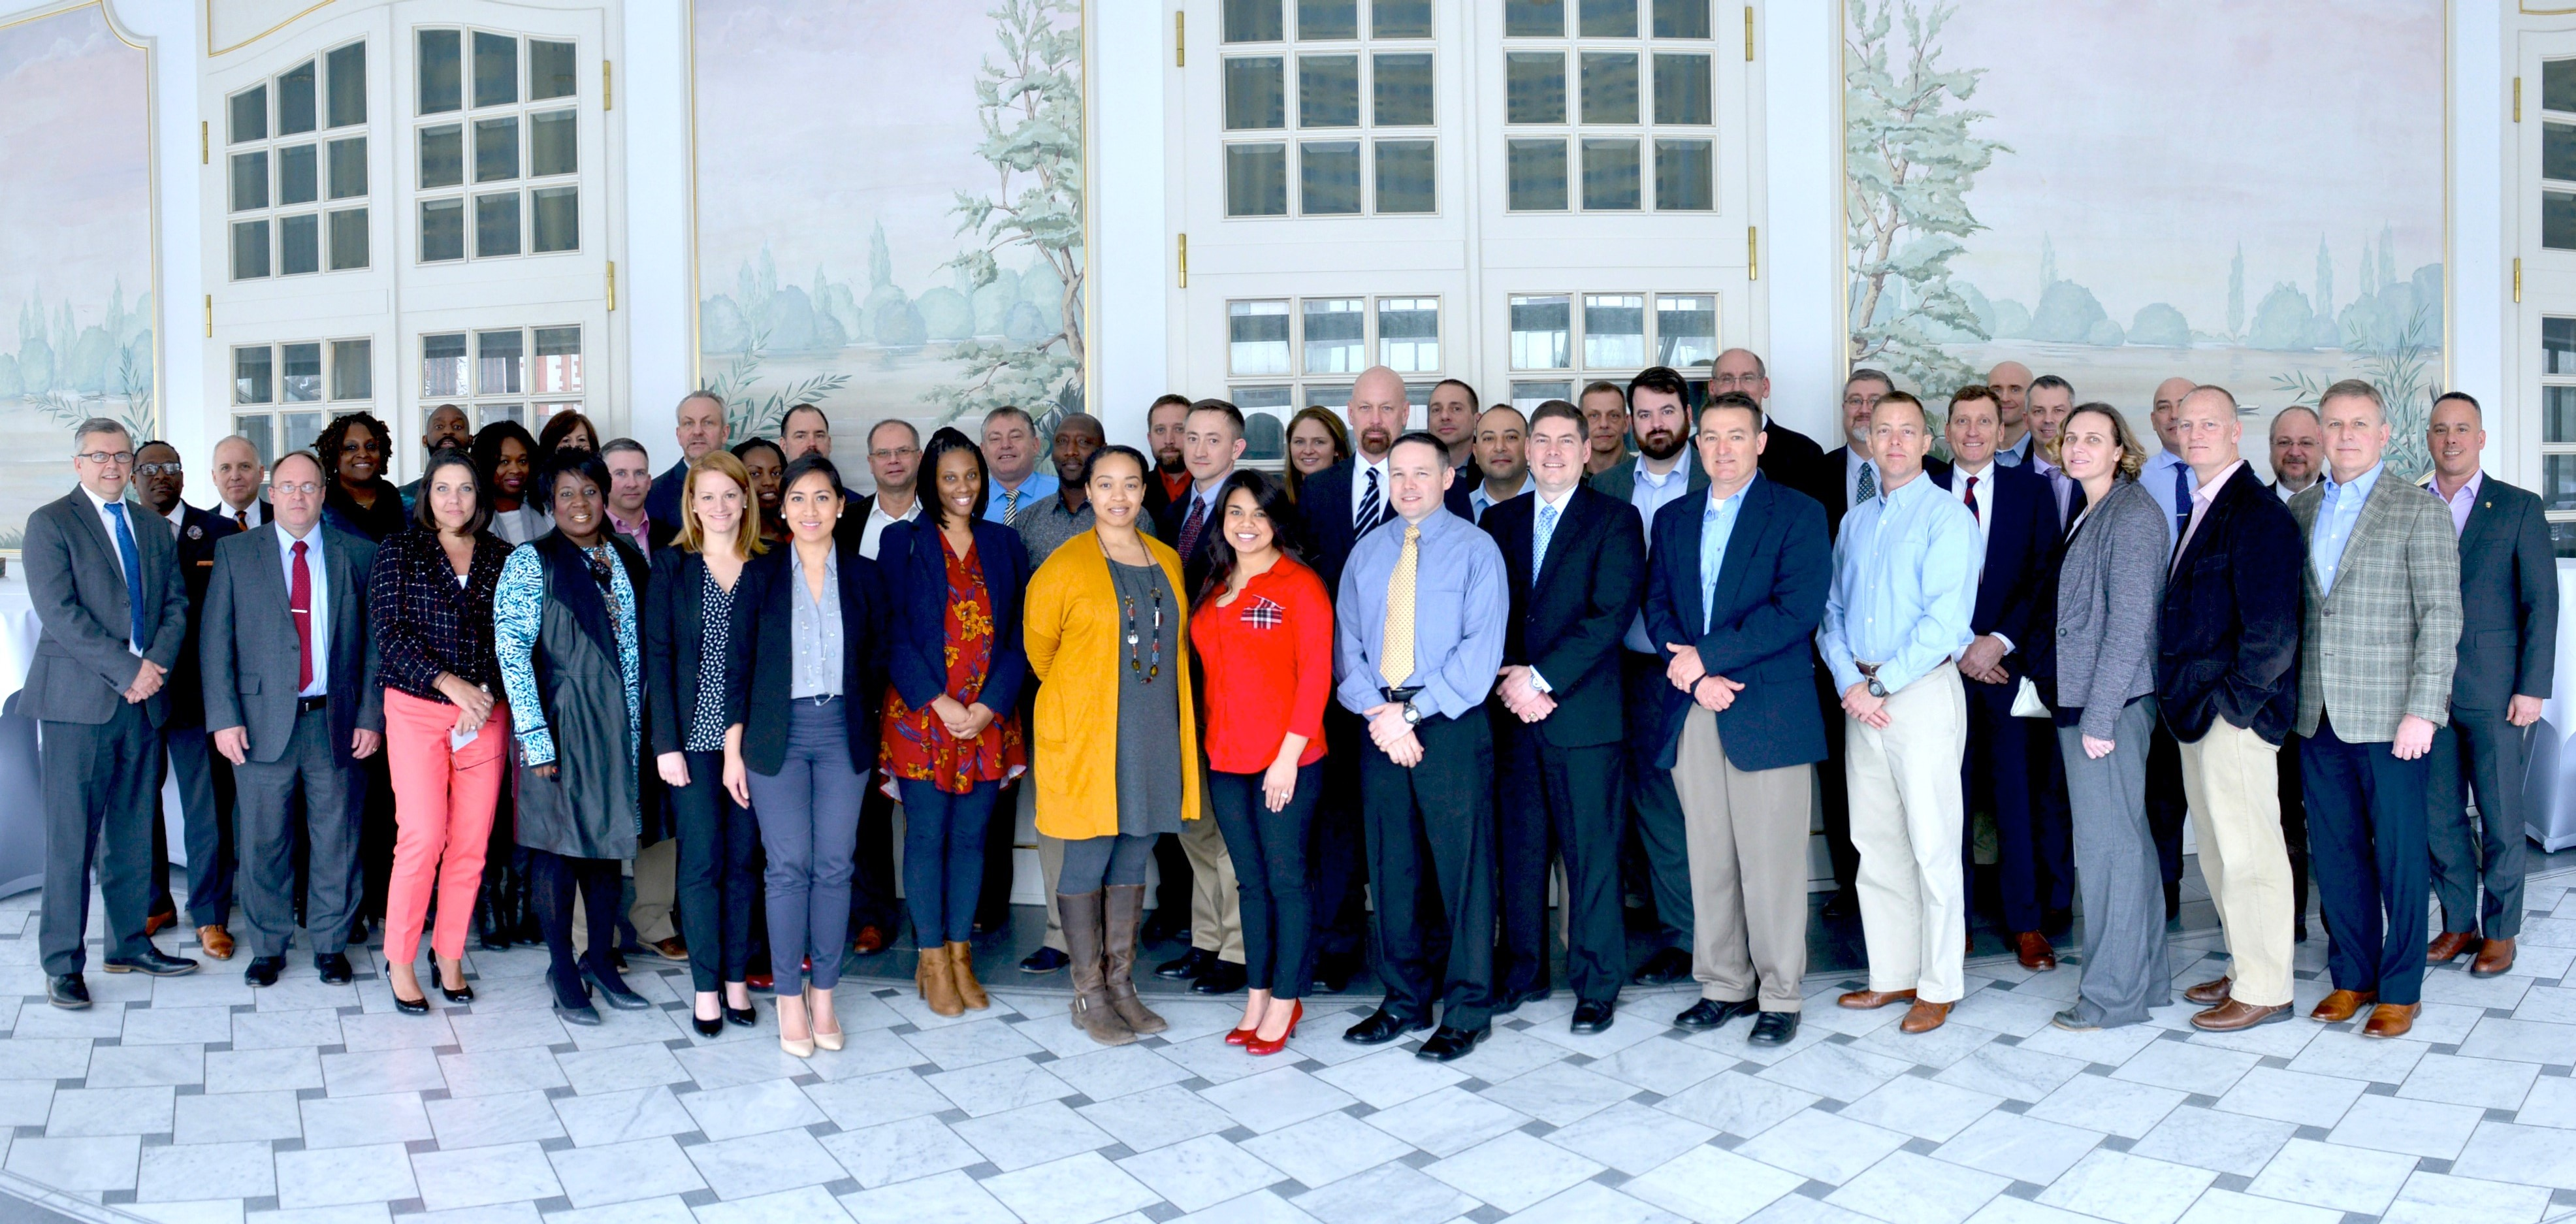 "STUTTGART, Germany – U.S. Africa Command hosted a Resources and Assessments Workshop, March 27, 2018, in Mainz, Germany. Led by the AFRICOM Directorate of Resources and Assessments, or J8, the theme of the event was ""Shaping the Future."" Topics of discussion included programming and budget review, integrated priority list process, strategic assessments, science and technology, and security cooperation authorizations, fund allocations, future posture of U.S. forces in Africa, and how to align efforts with the new national defense strategy. (Photo by Staff Sgt. Grady Jones, AFRICOM Public Affairs)"